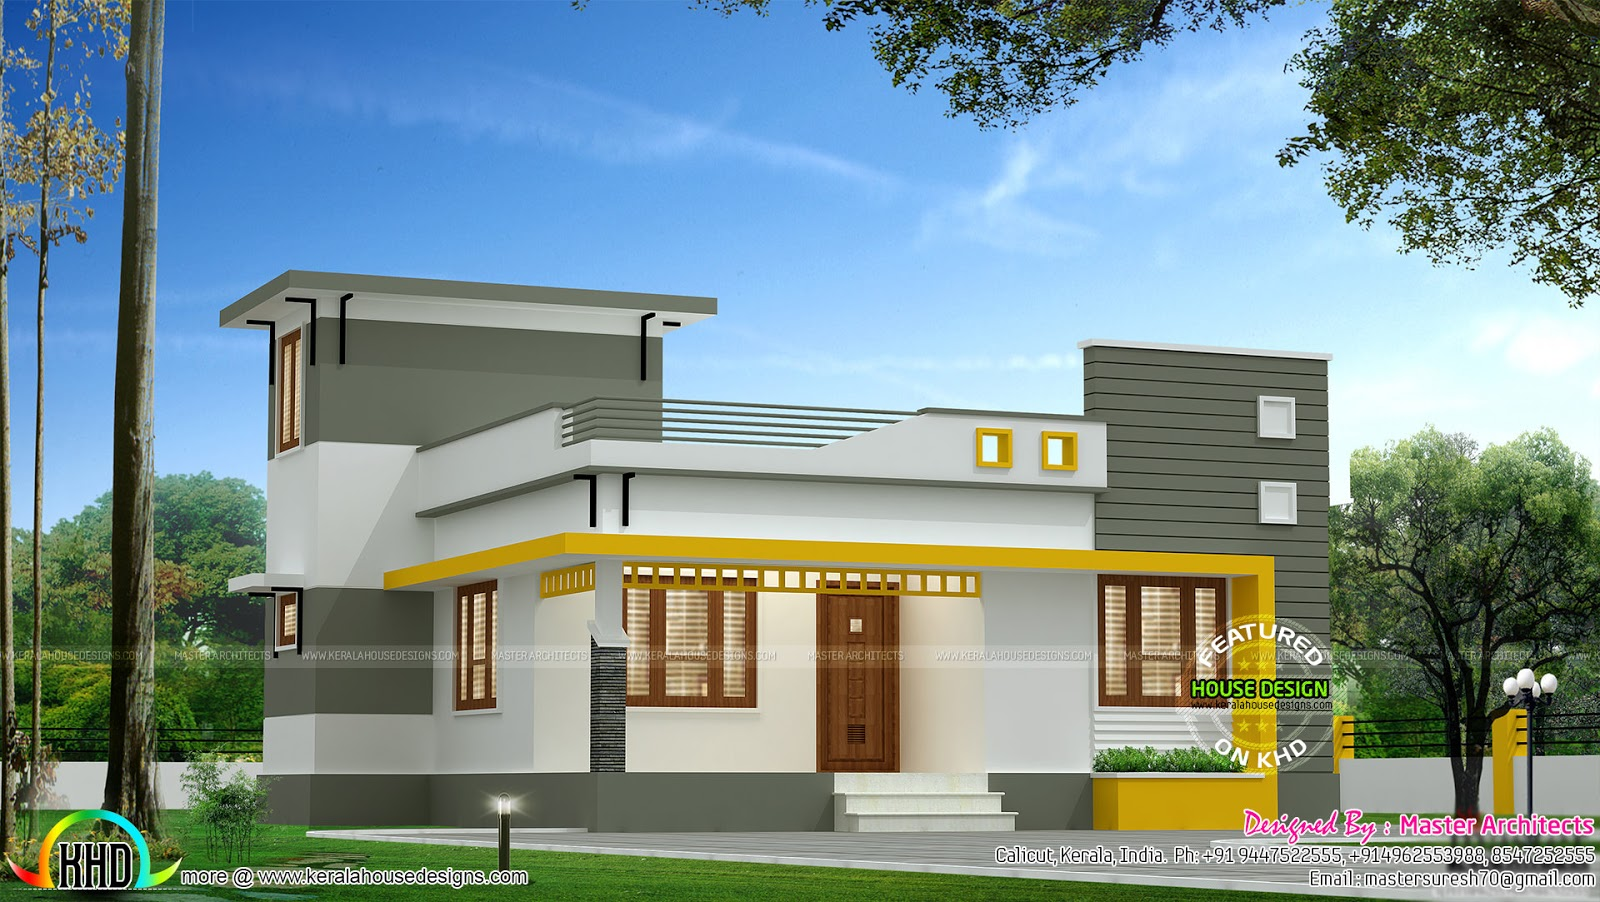 3 bedroom single floor modern architecture home kerala for Single floor house